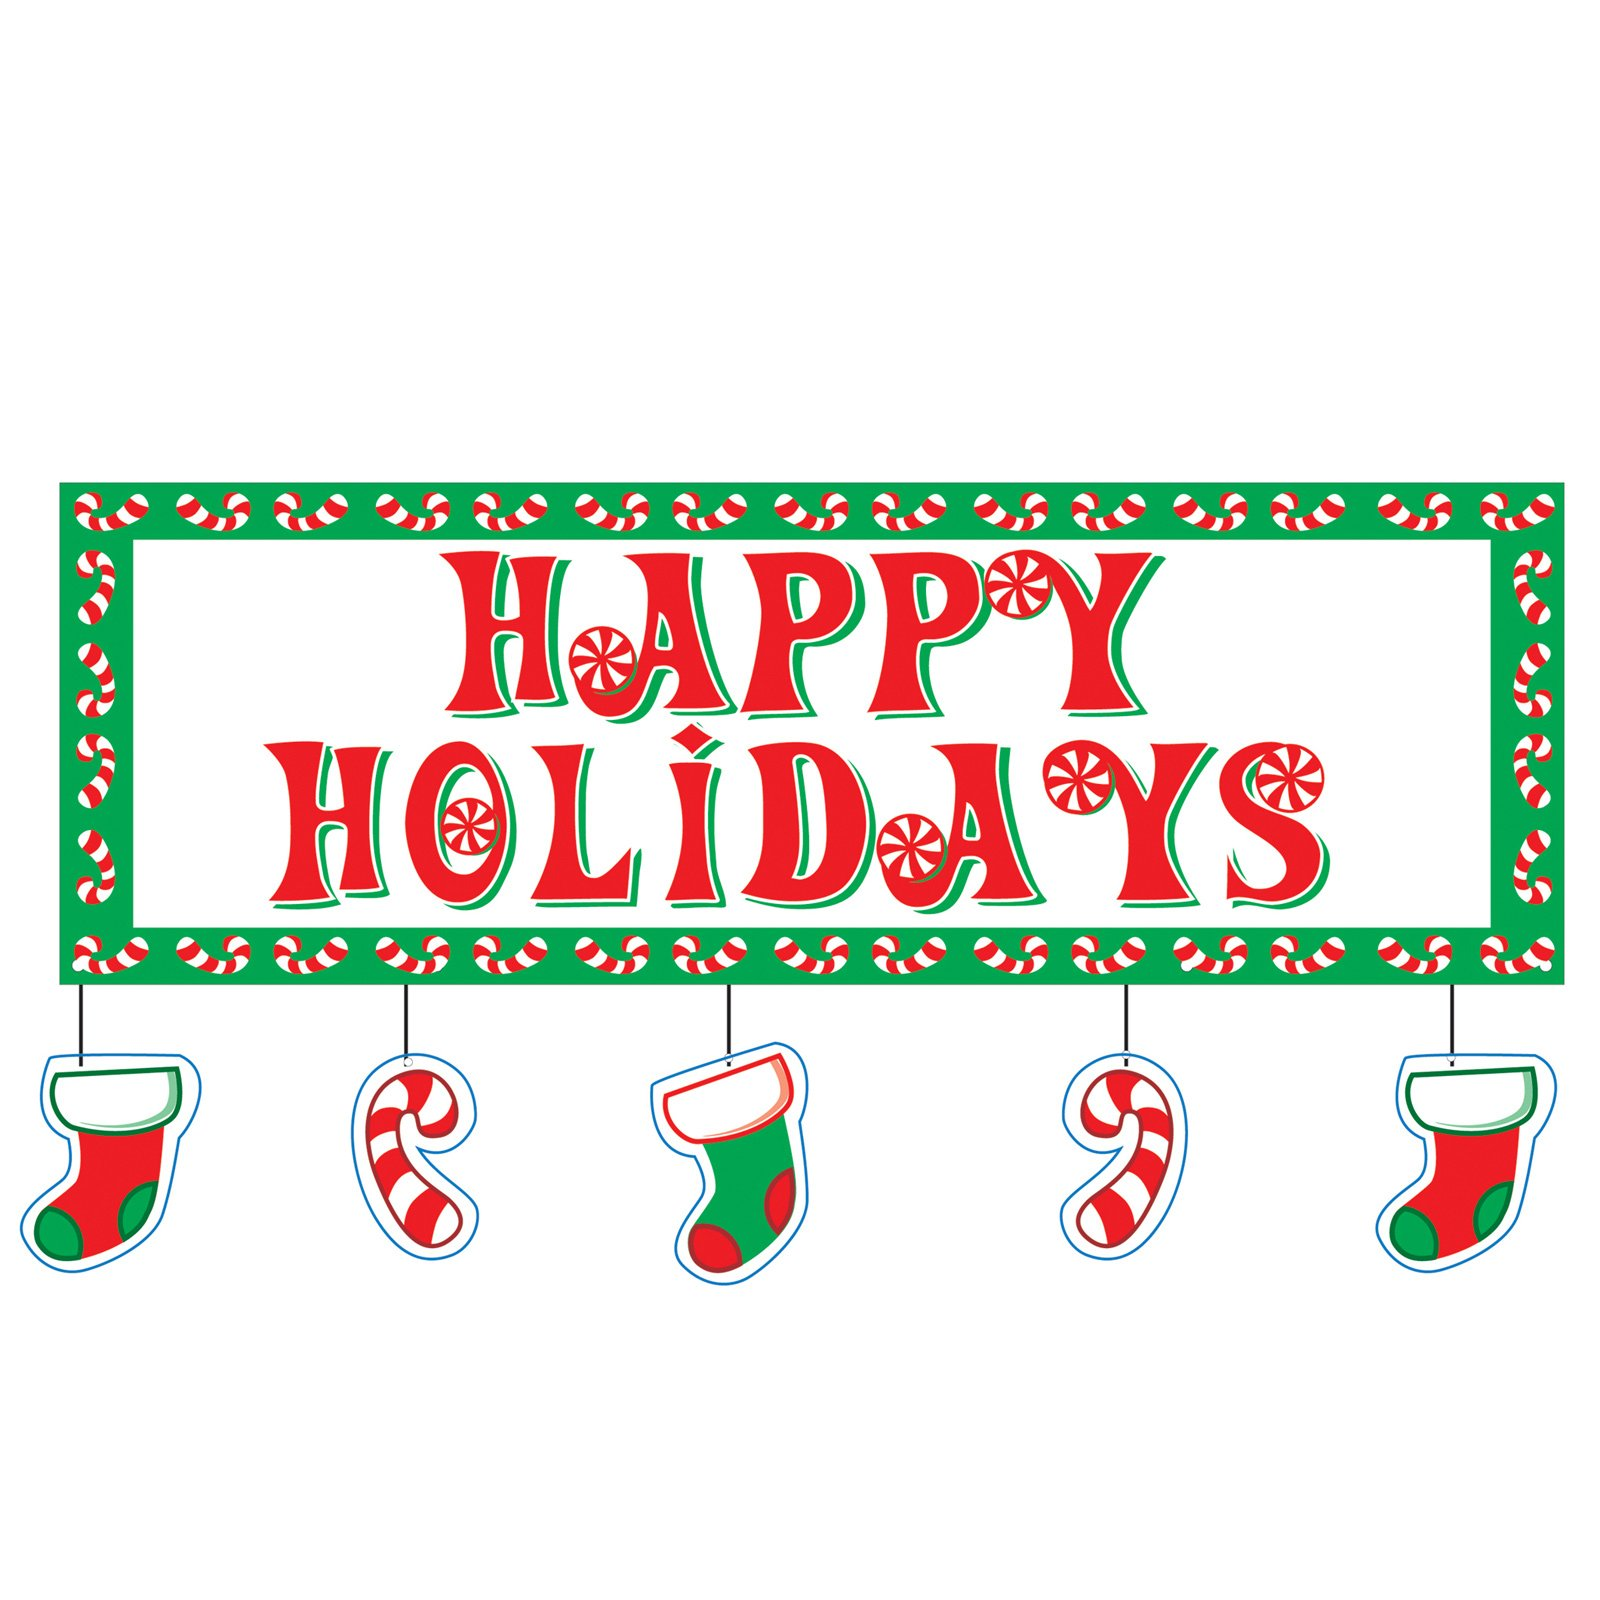 Happy Holiday Clip Art Free - ClipArt Best